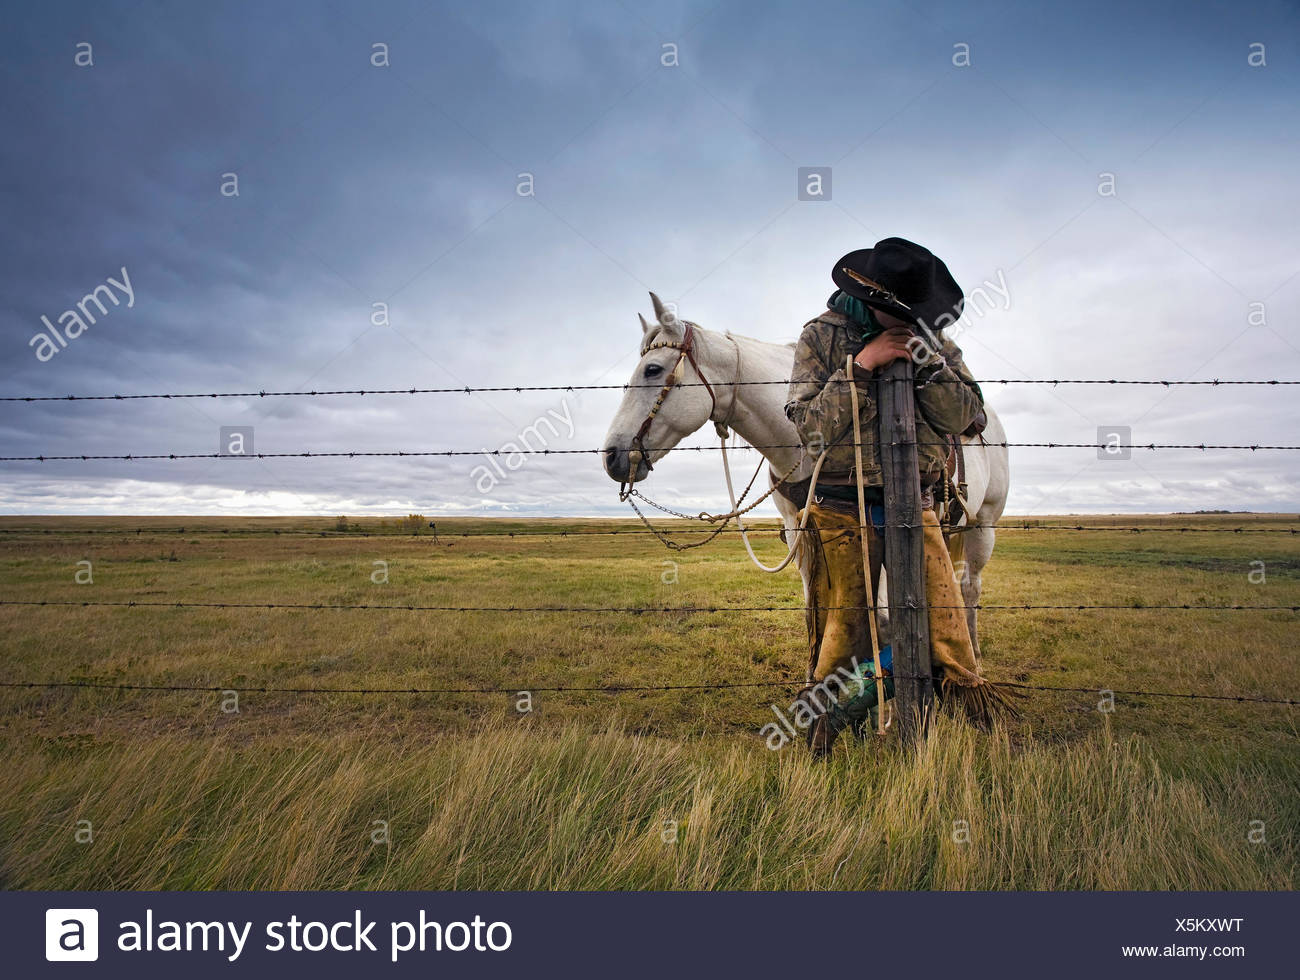 A cowboy standing leaning on a fence post on the range. A grey horse behind him. - Stock Image